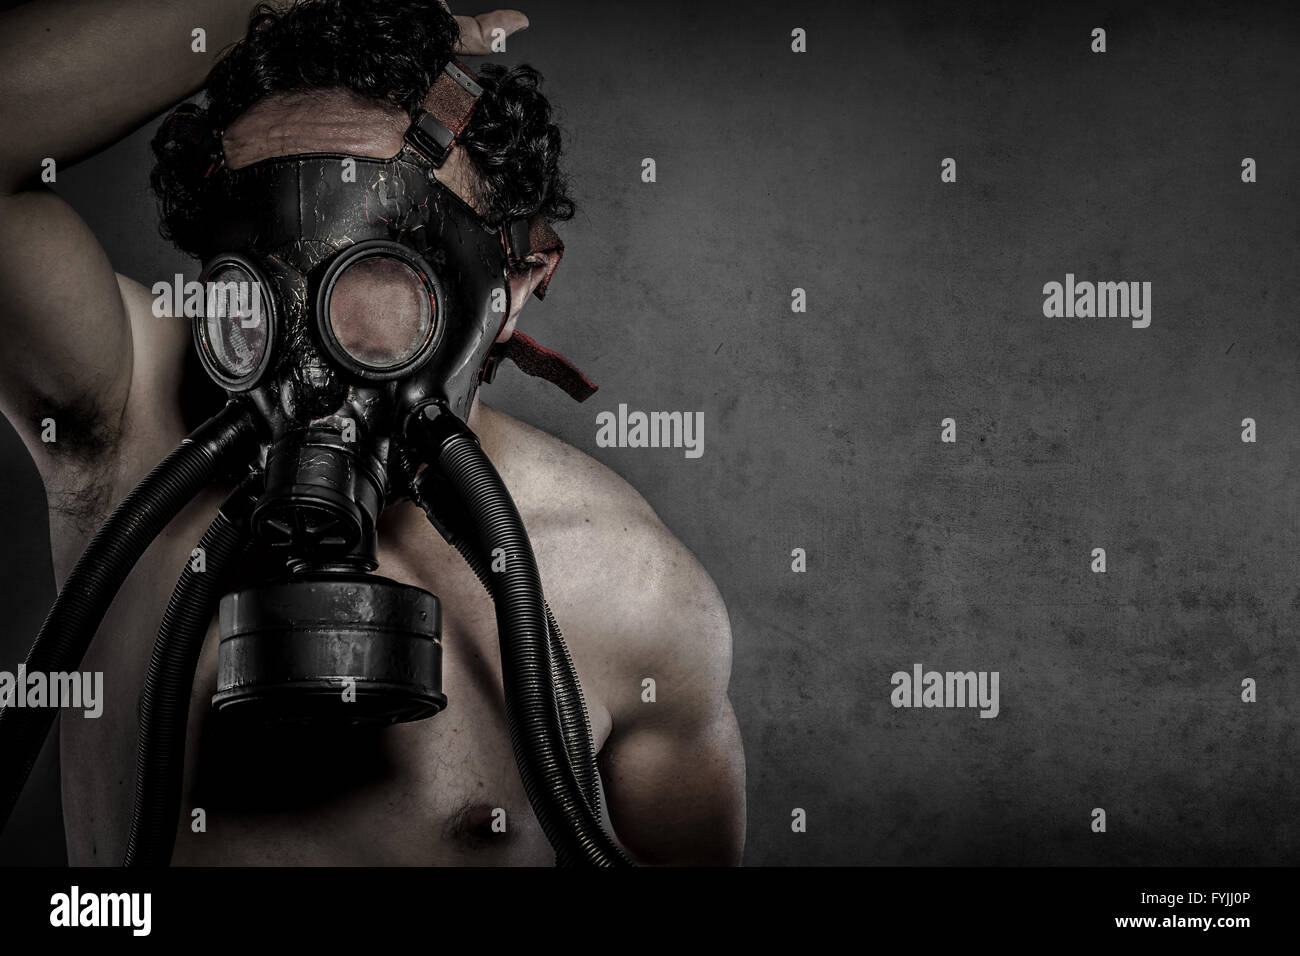 Pollution, nuclear disaster, man with gas mask, protection - Stock Image